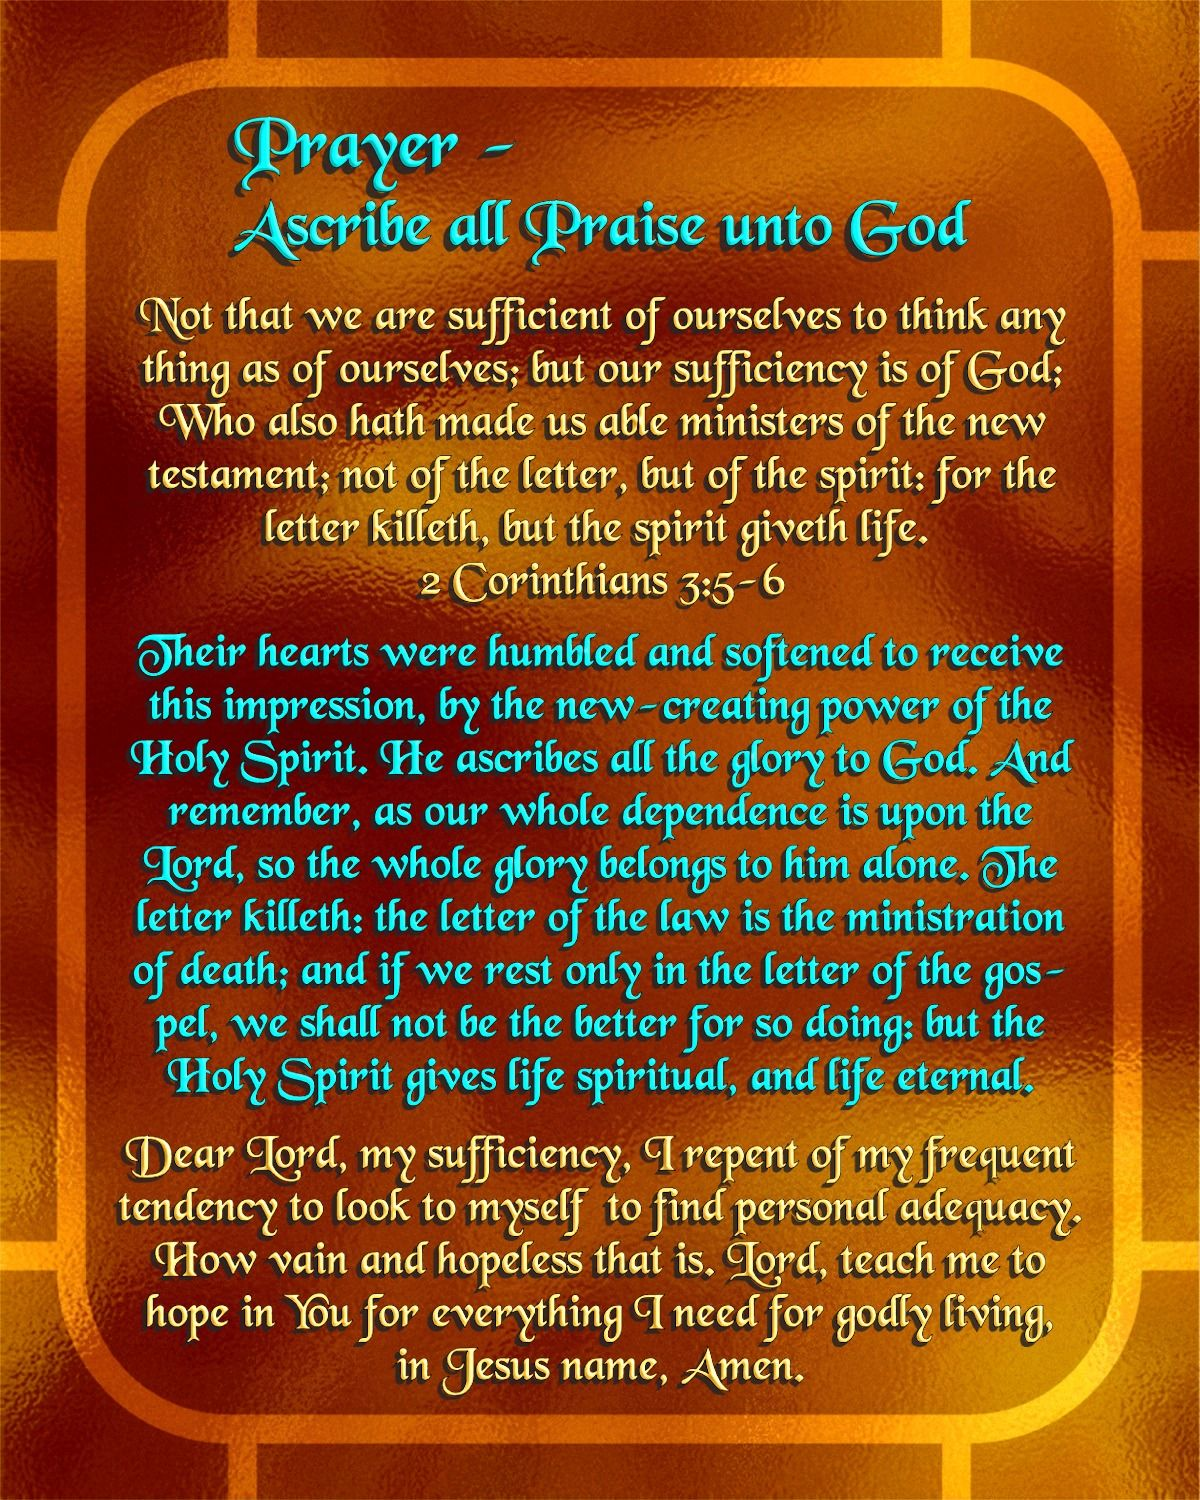 Prayer - Ascribe all Praise unto God